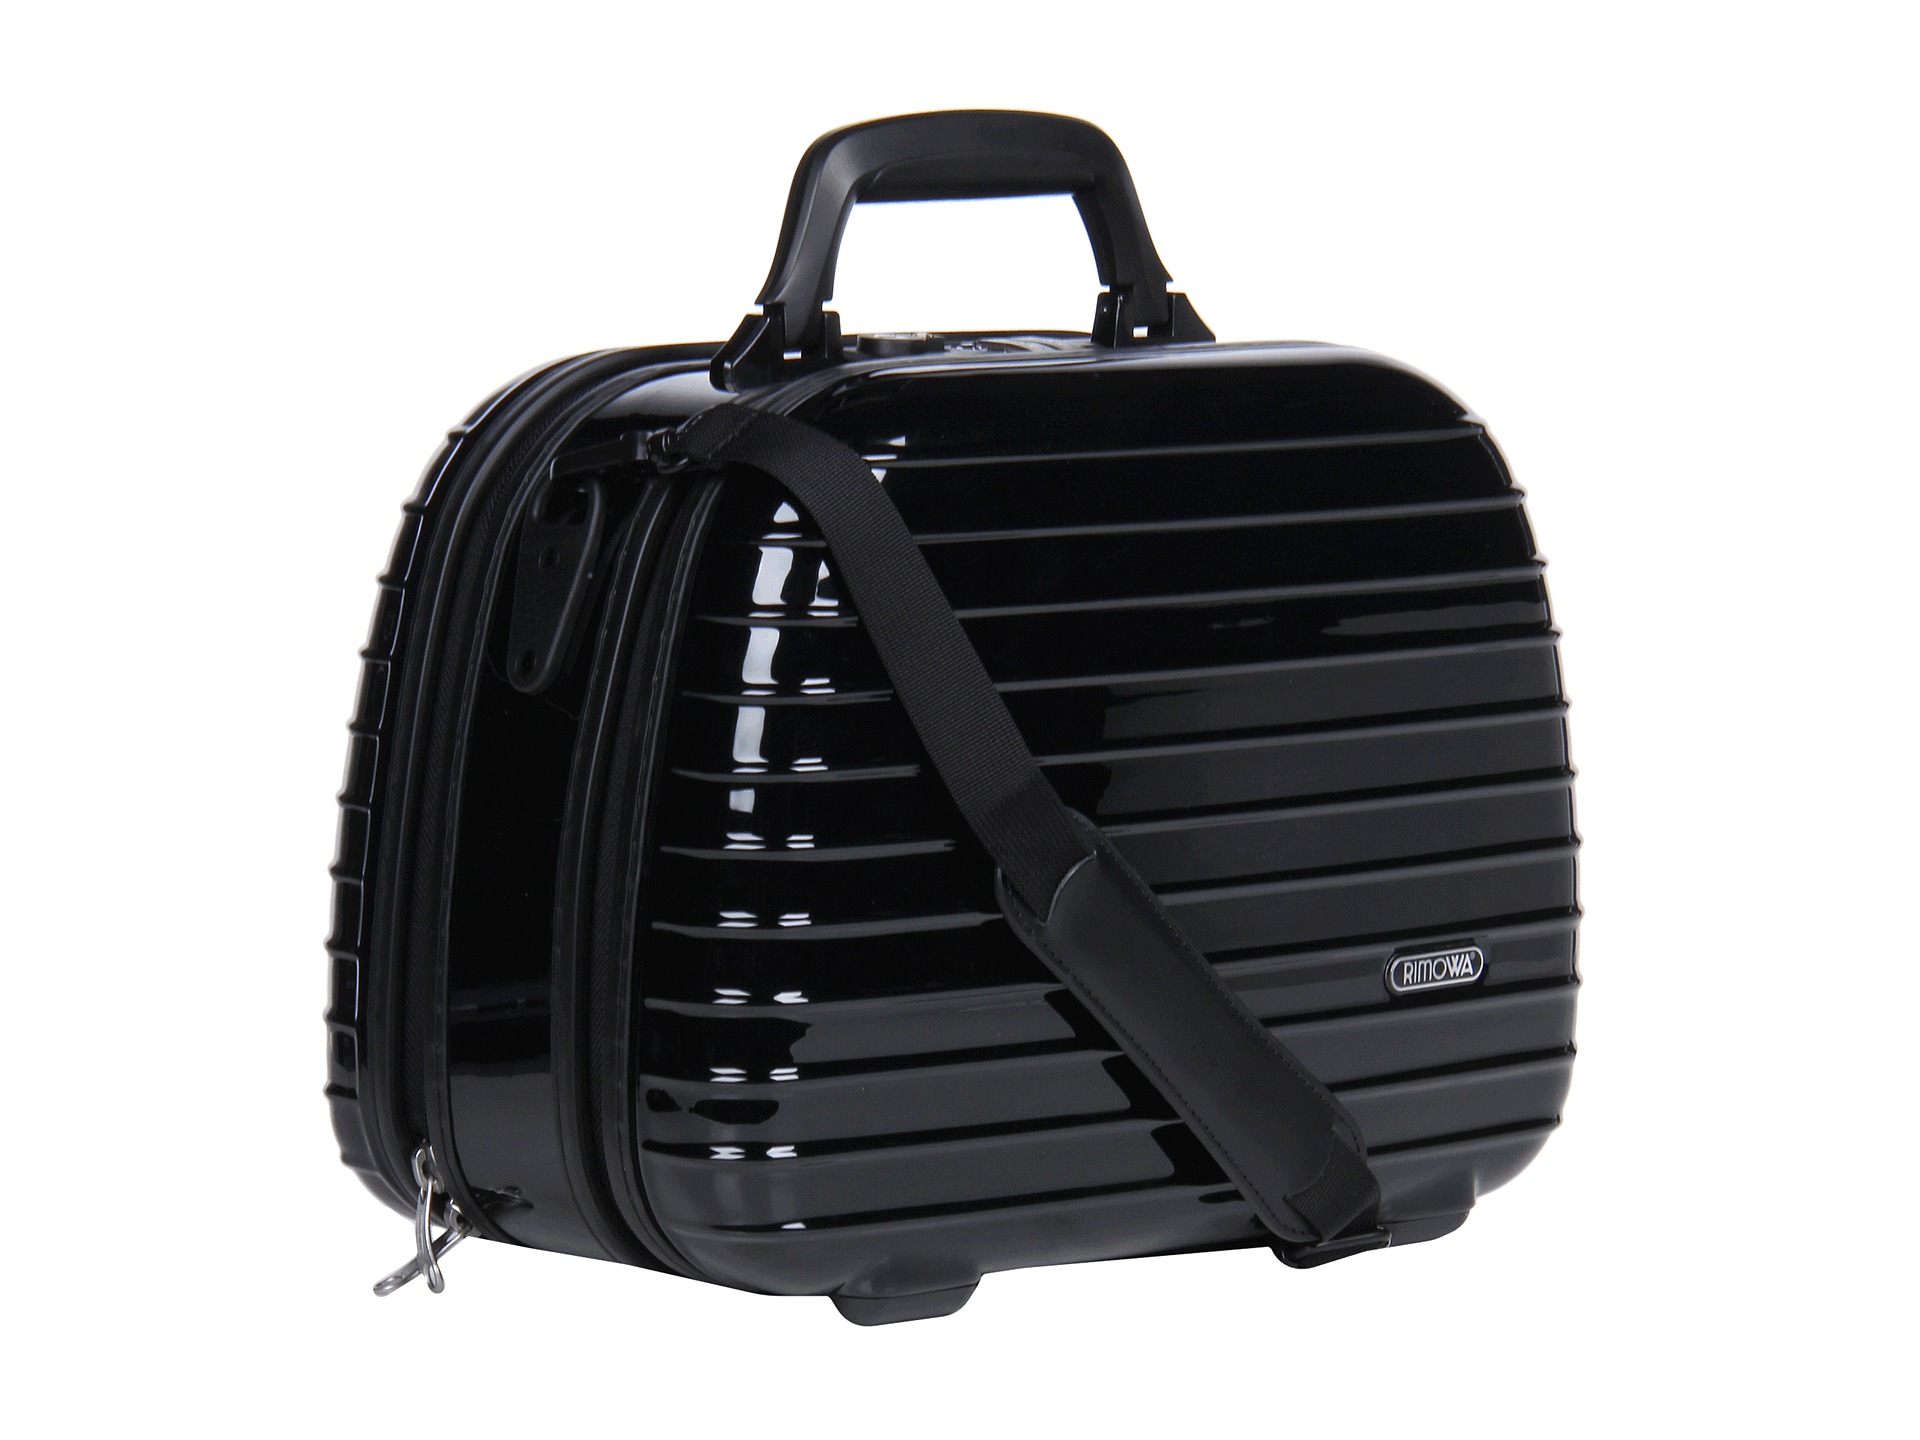 rimowa salsa deluxe beauty case black free shipping both ways. Black Bedroom Furniture Sets. Home Design Ideas